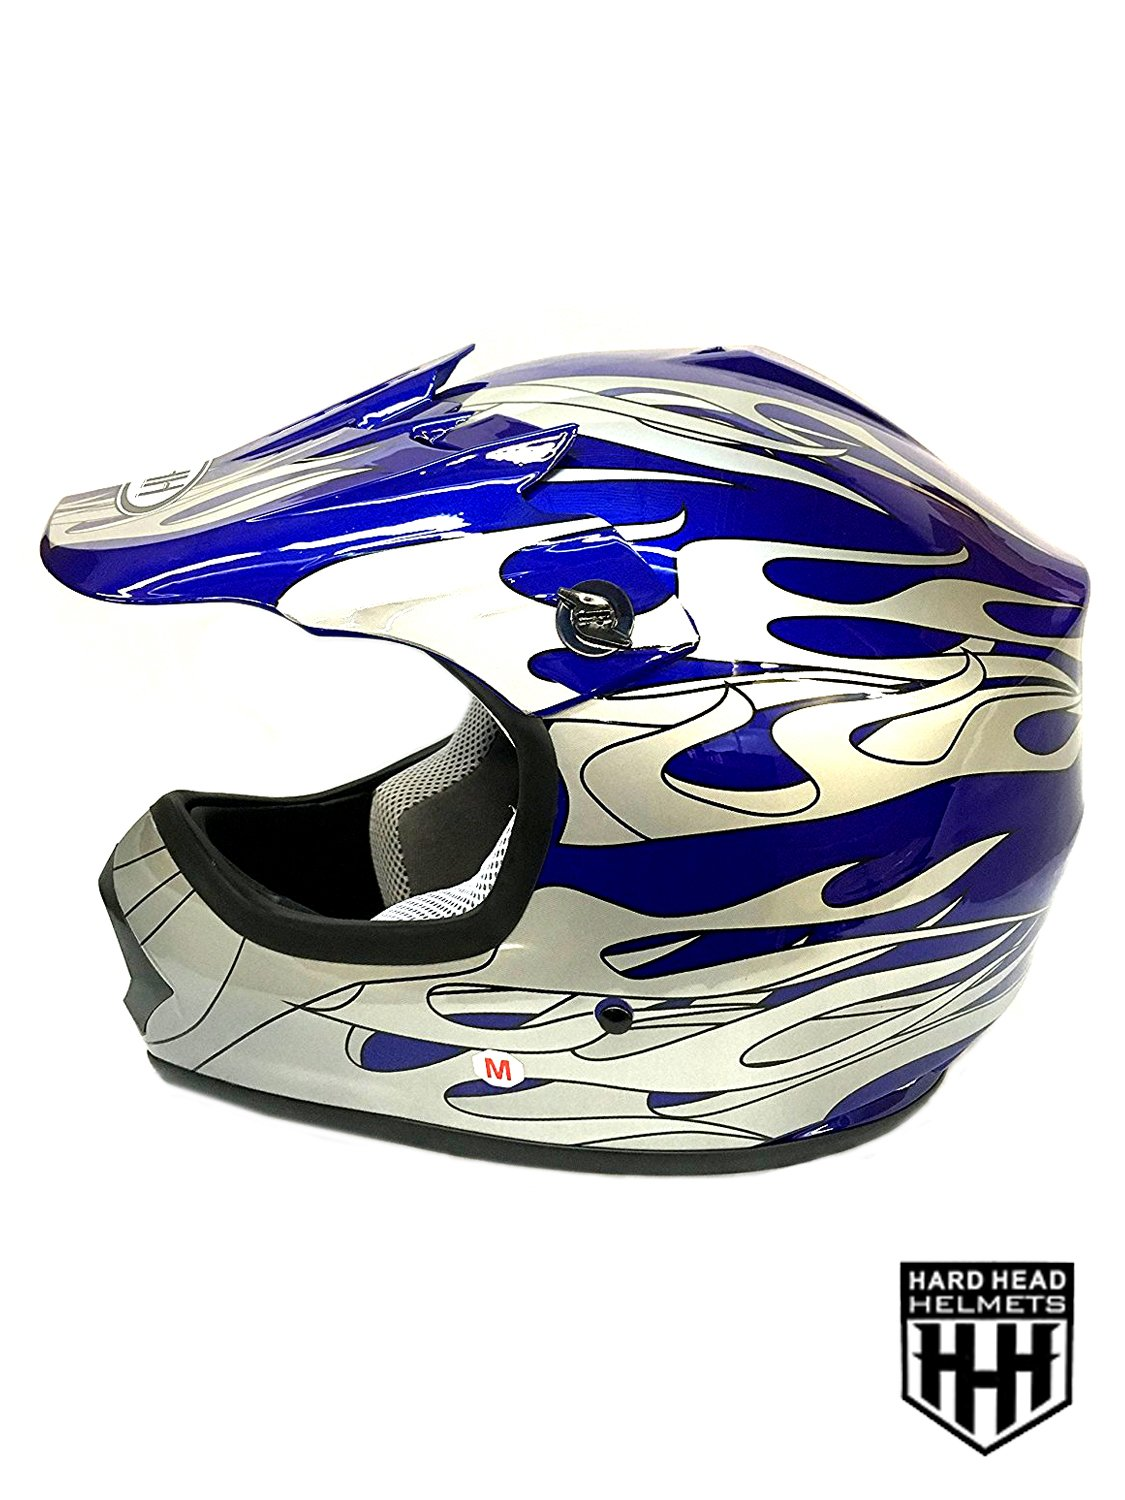 SmartDealsNow YOUTH DOT Helmet Blue Flame Color Dirt Bike Style Youth Model Large